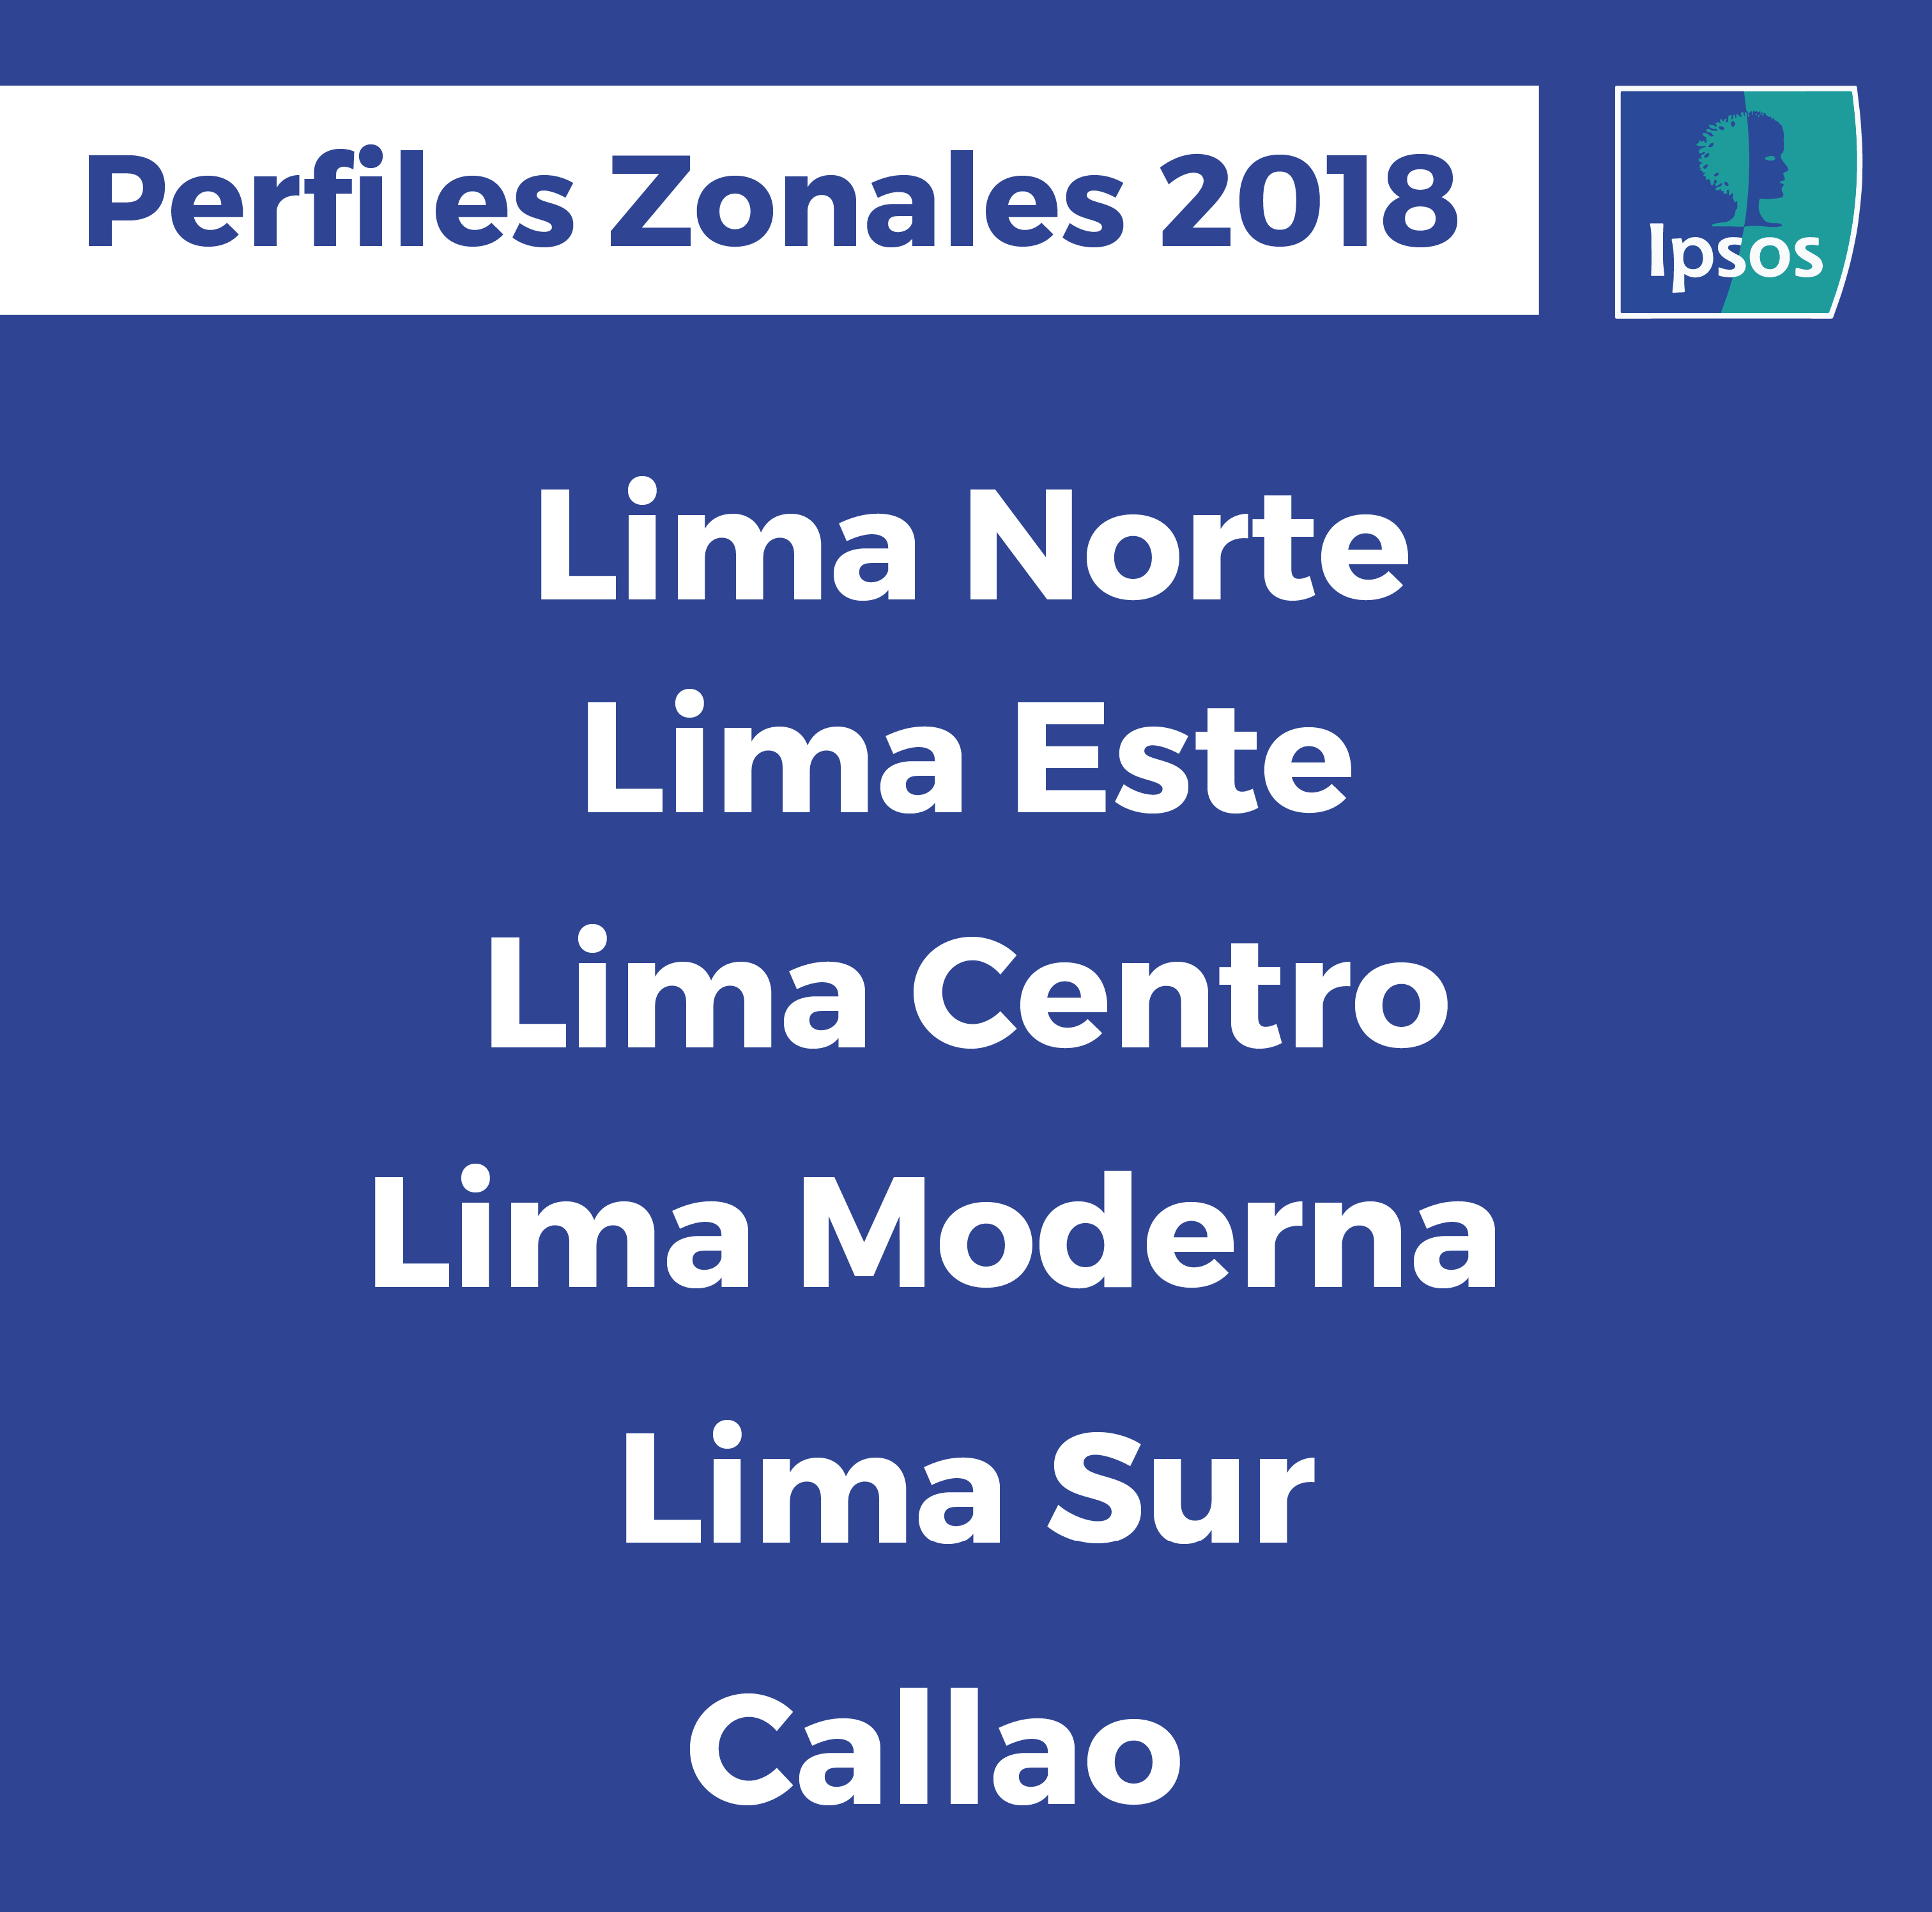 Perfiles Zonales: Lima a detalle